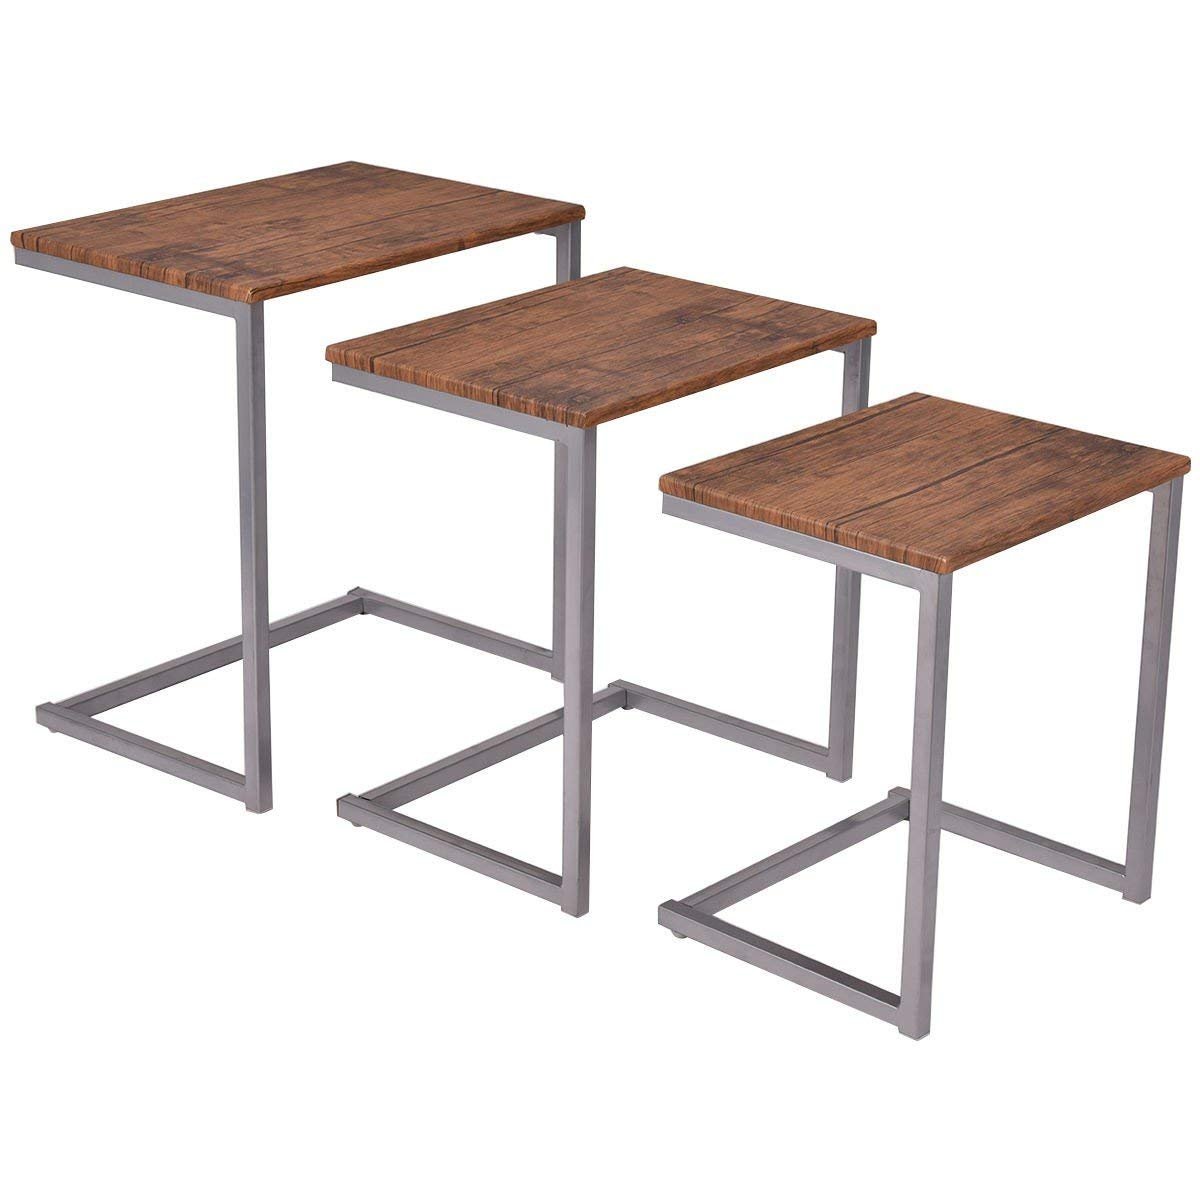 3 pcs Steel Stacking Nesting Coffee End Tables Stacked Mid Century CHOOSEandBUY